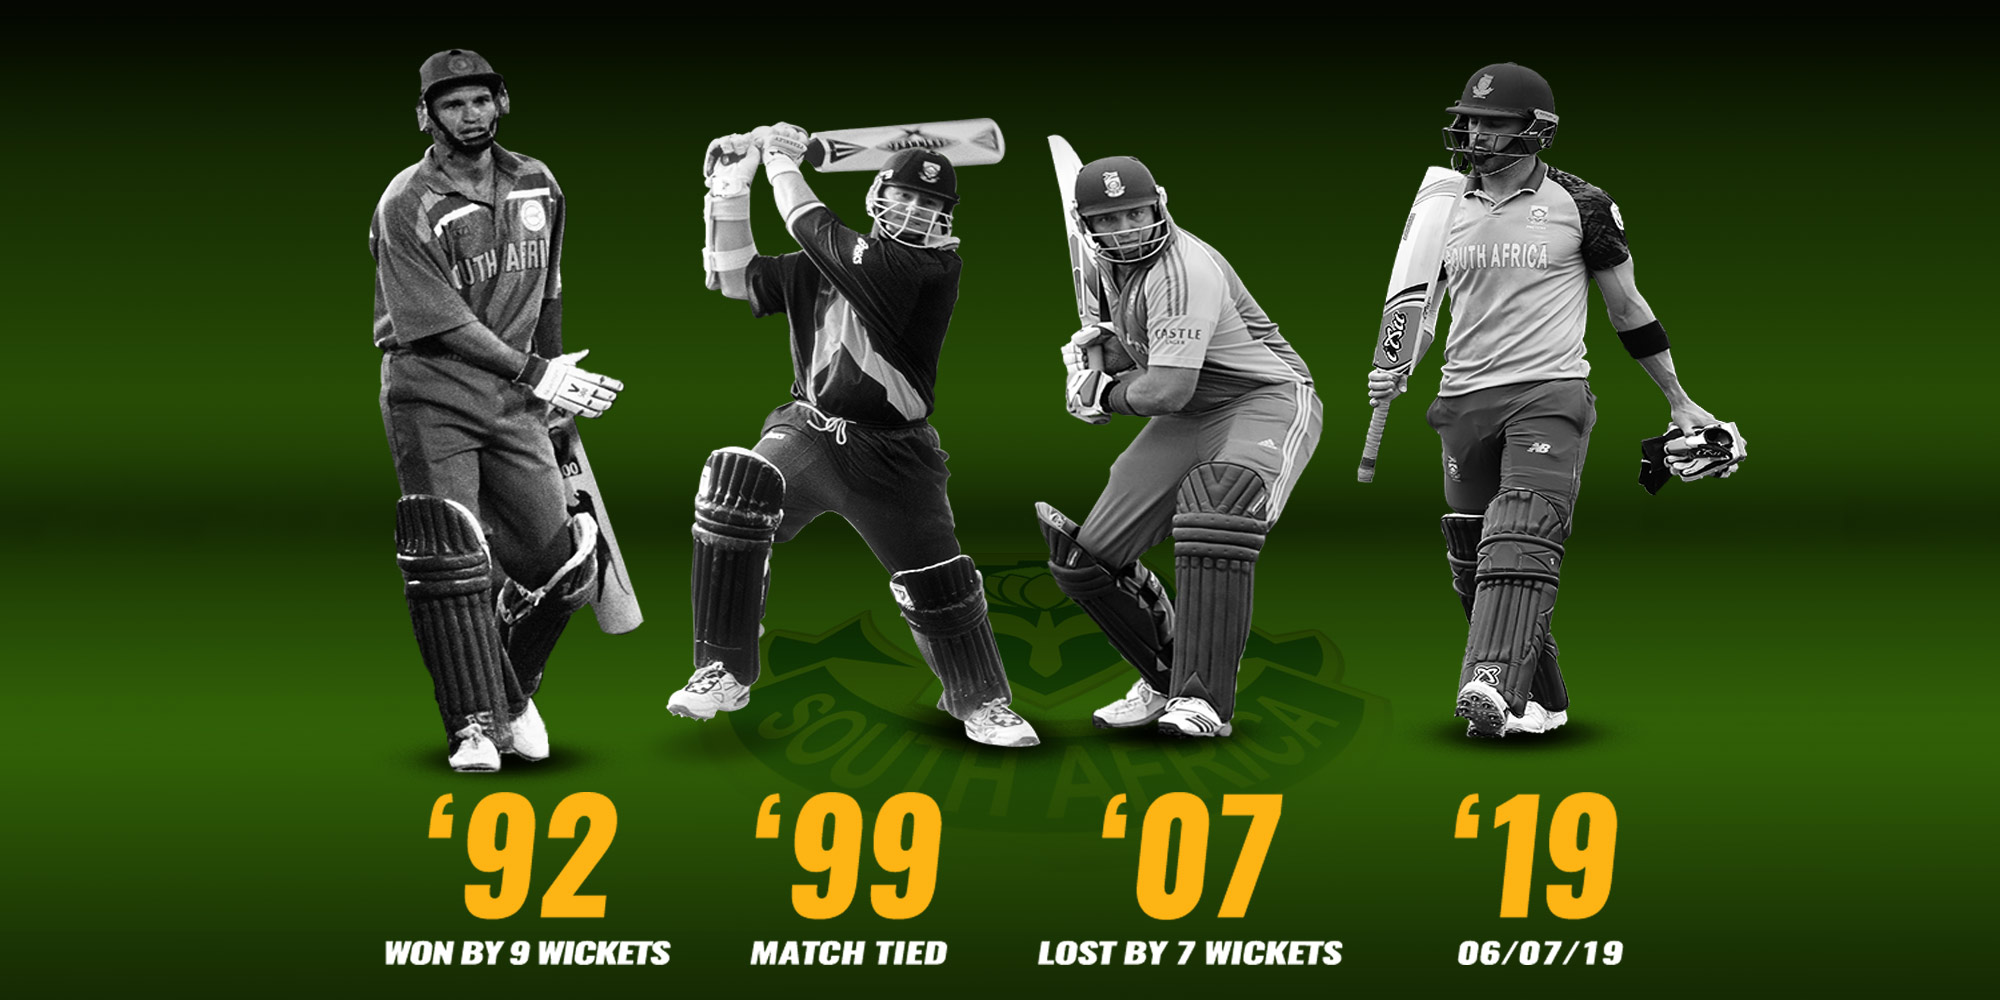 SOUTH AFRICA V AUSTRALIA: WORLD CUP HISTORY